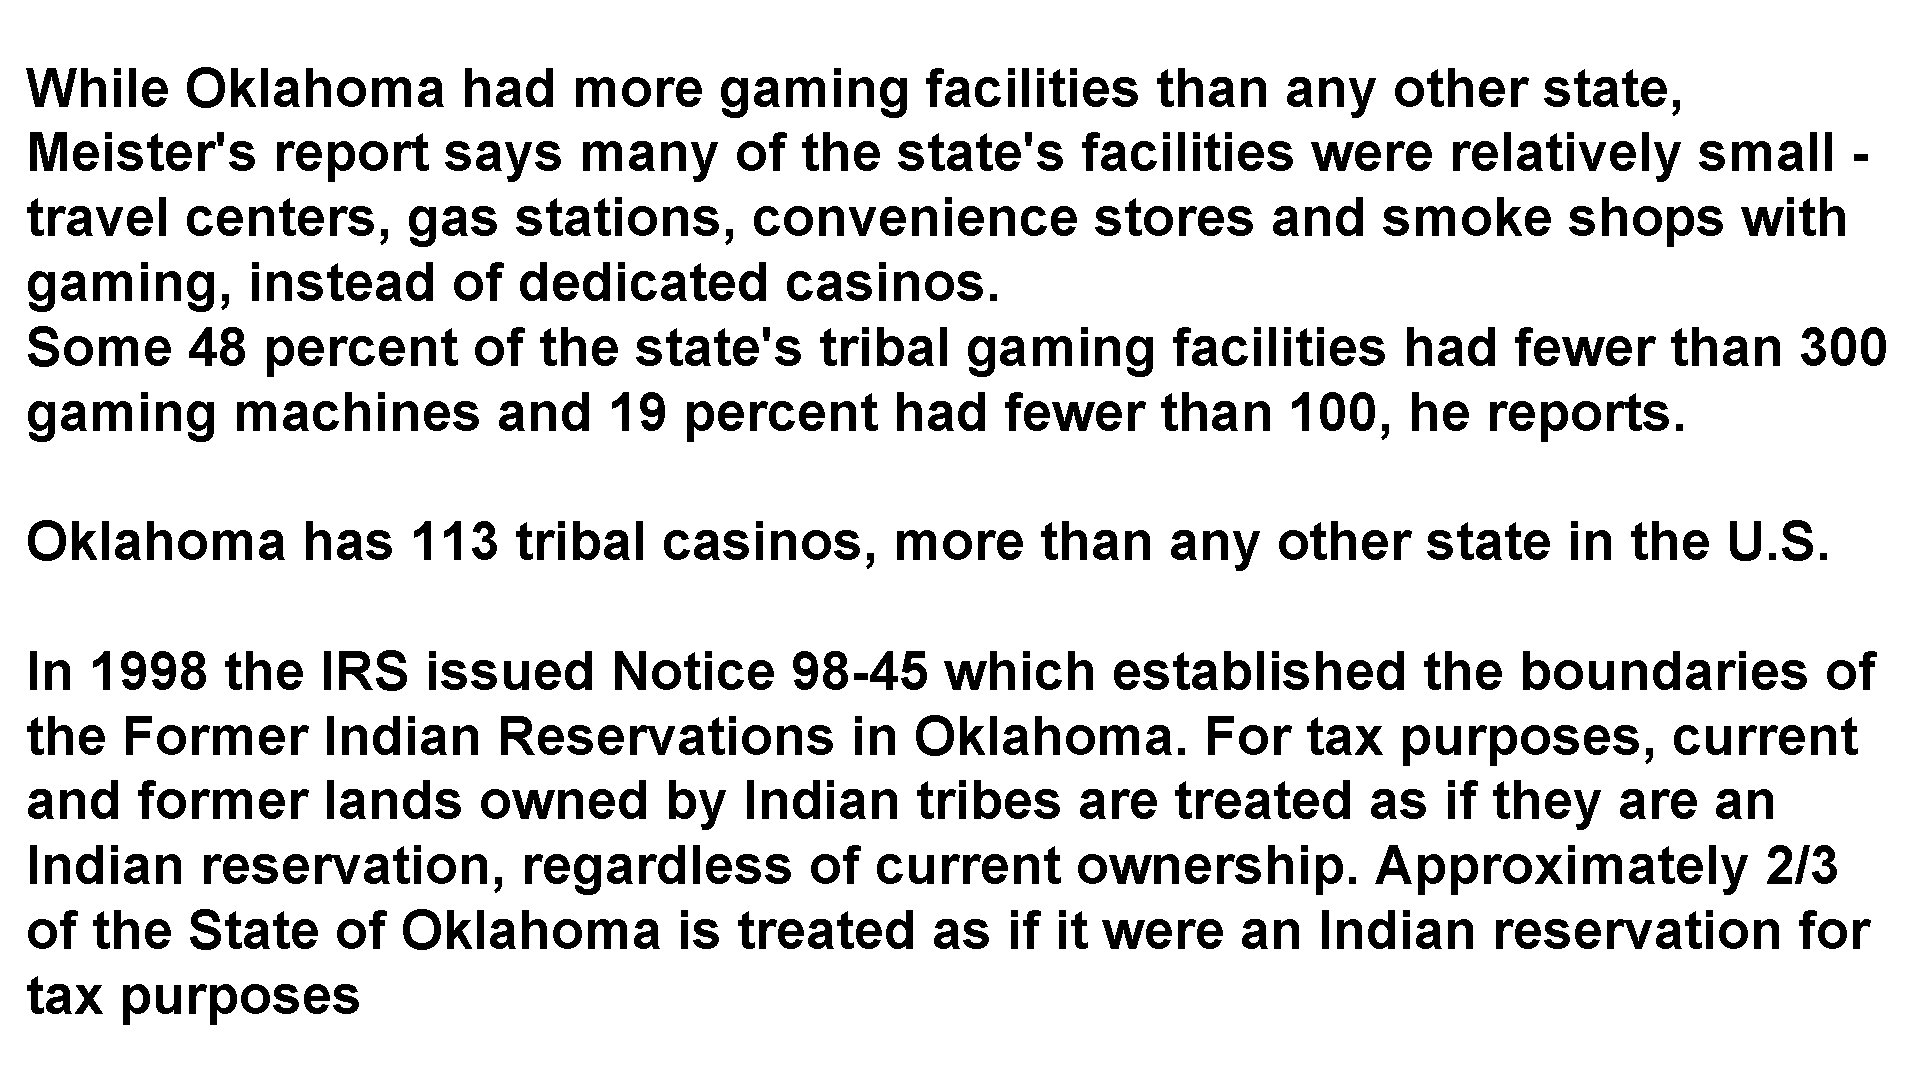 While Oklahoma had more gaming facilities than any other state, Meister's report says many